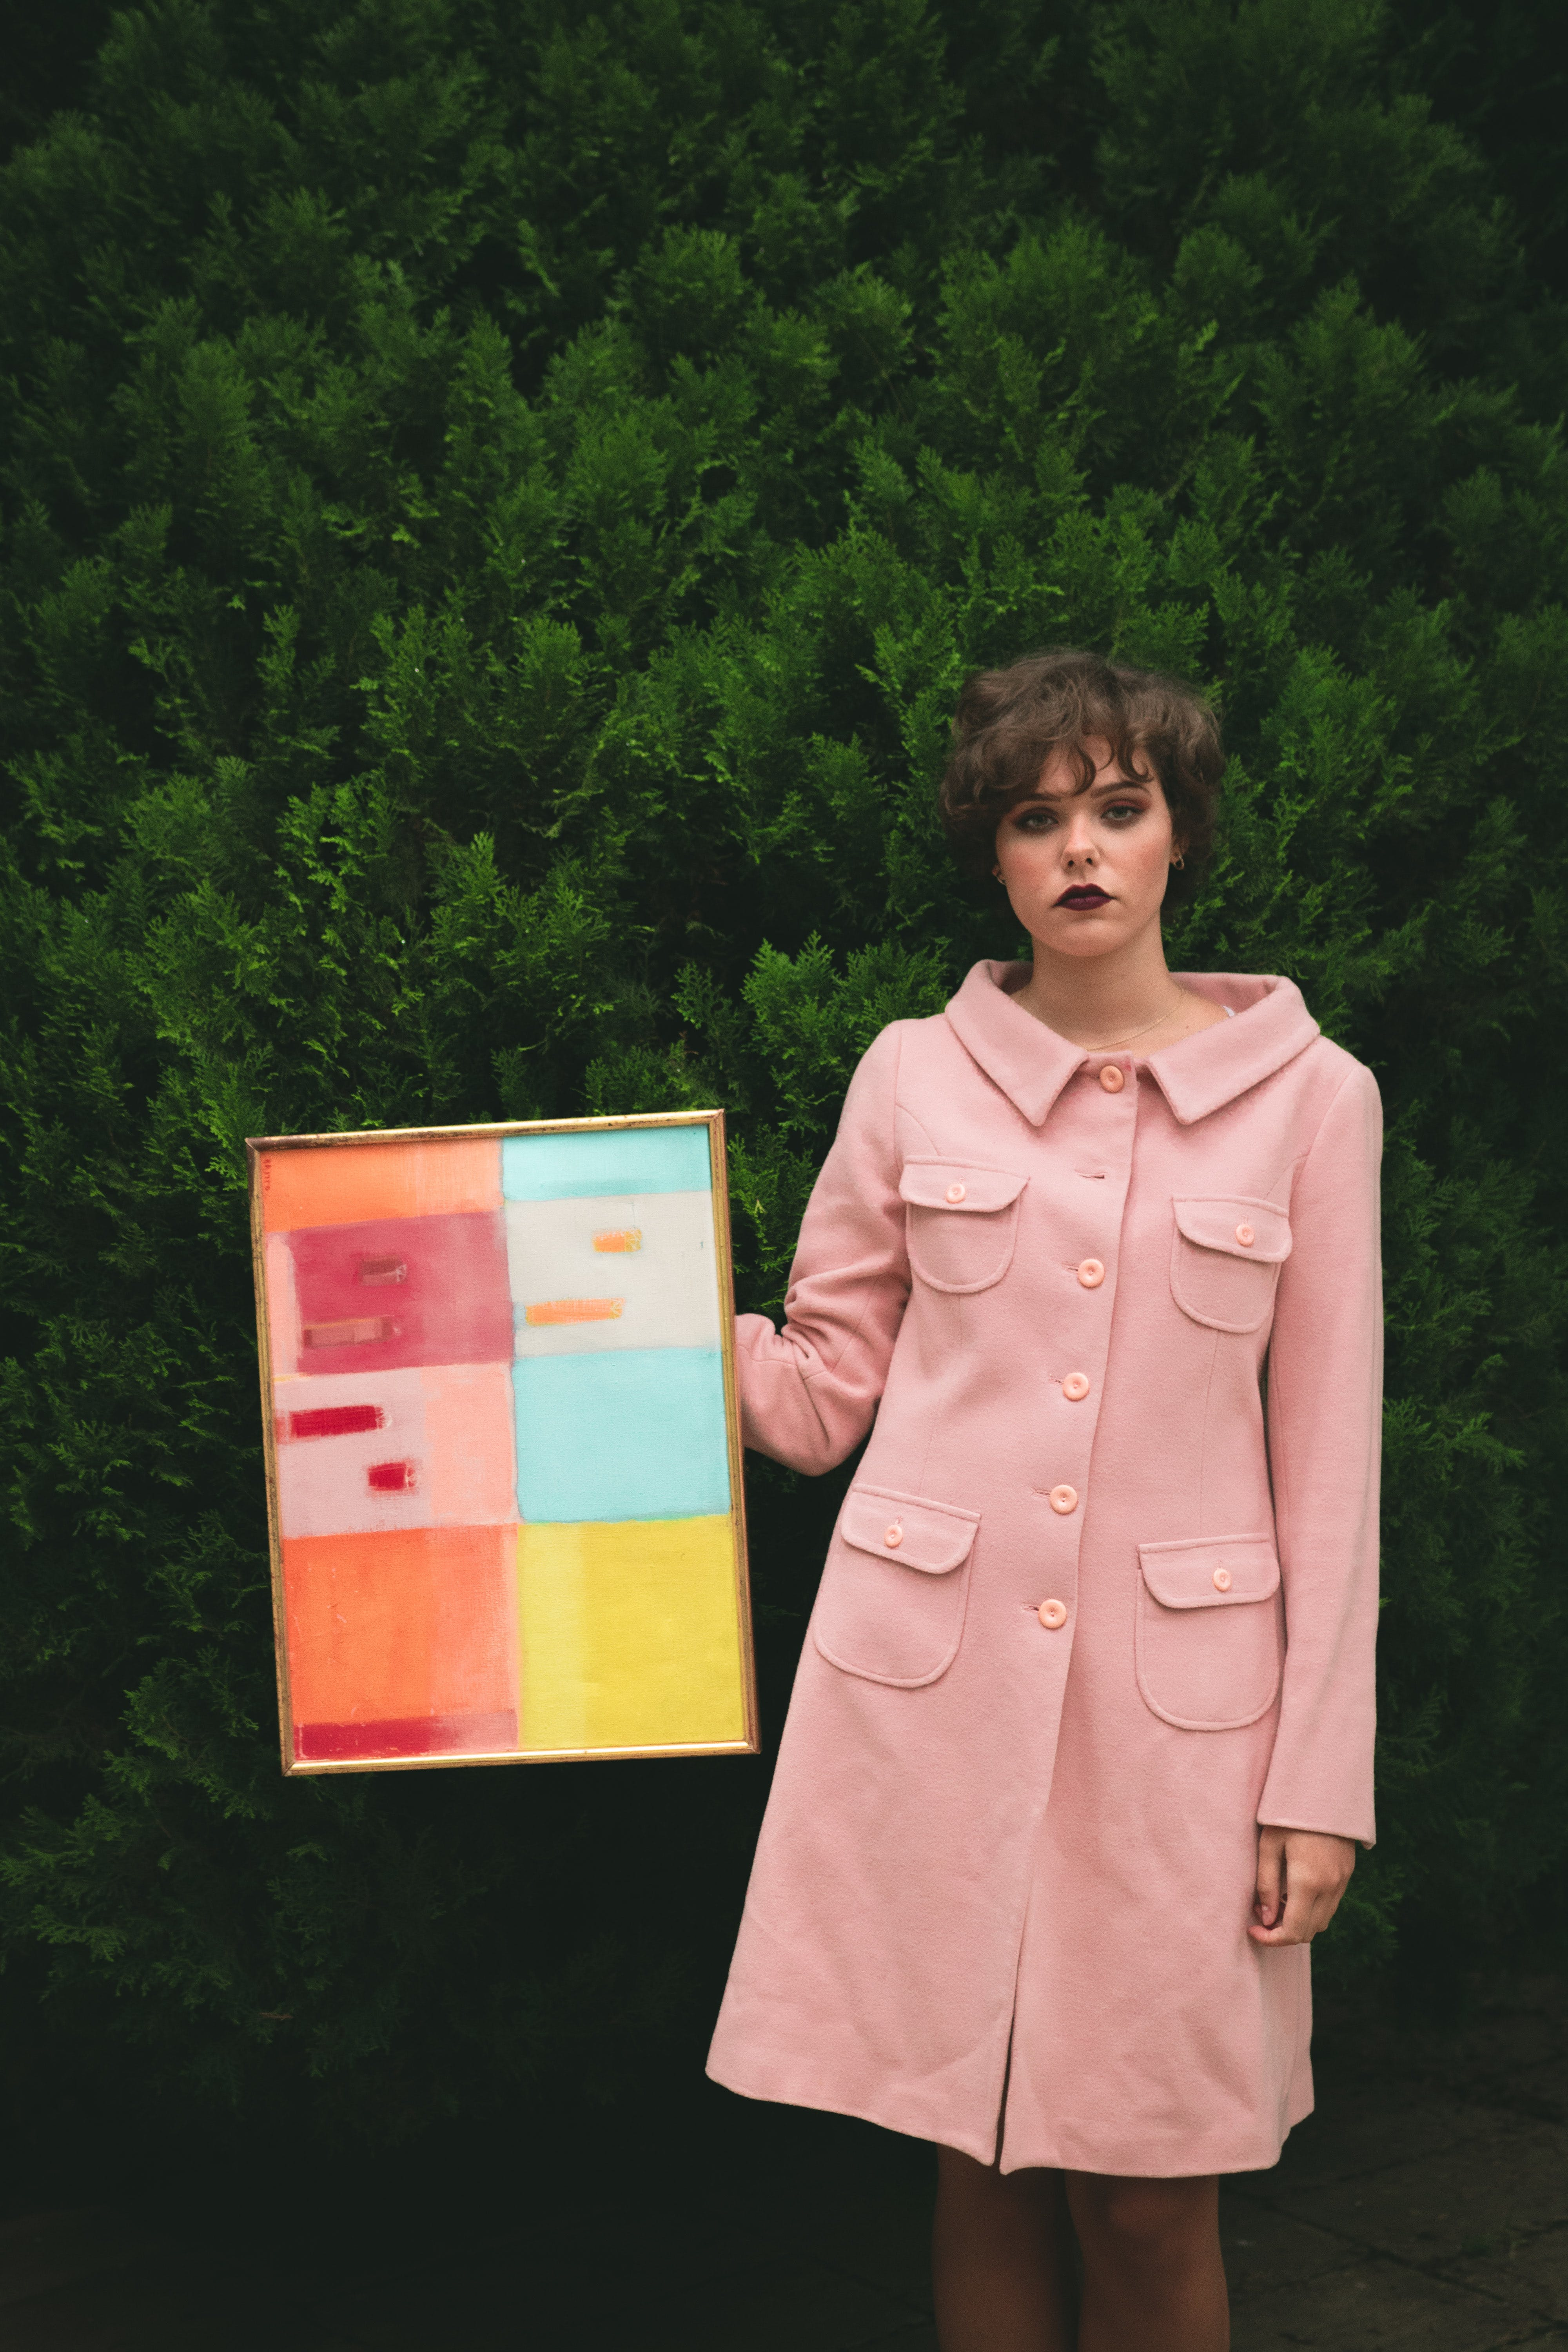 Woman Wearing Pink Button-up Coat Holding Photo Frame With Artwork